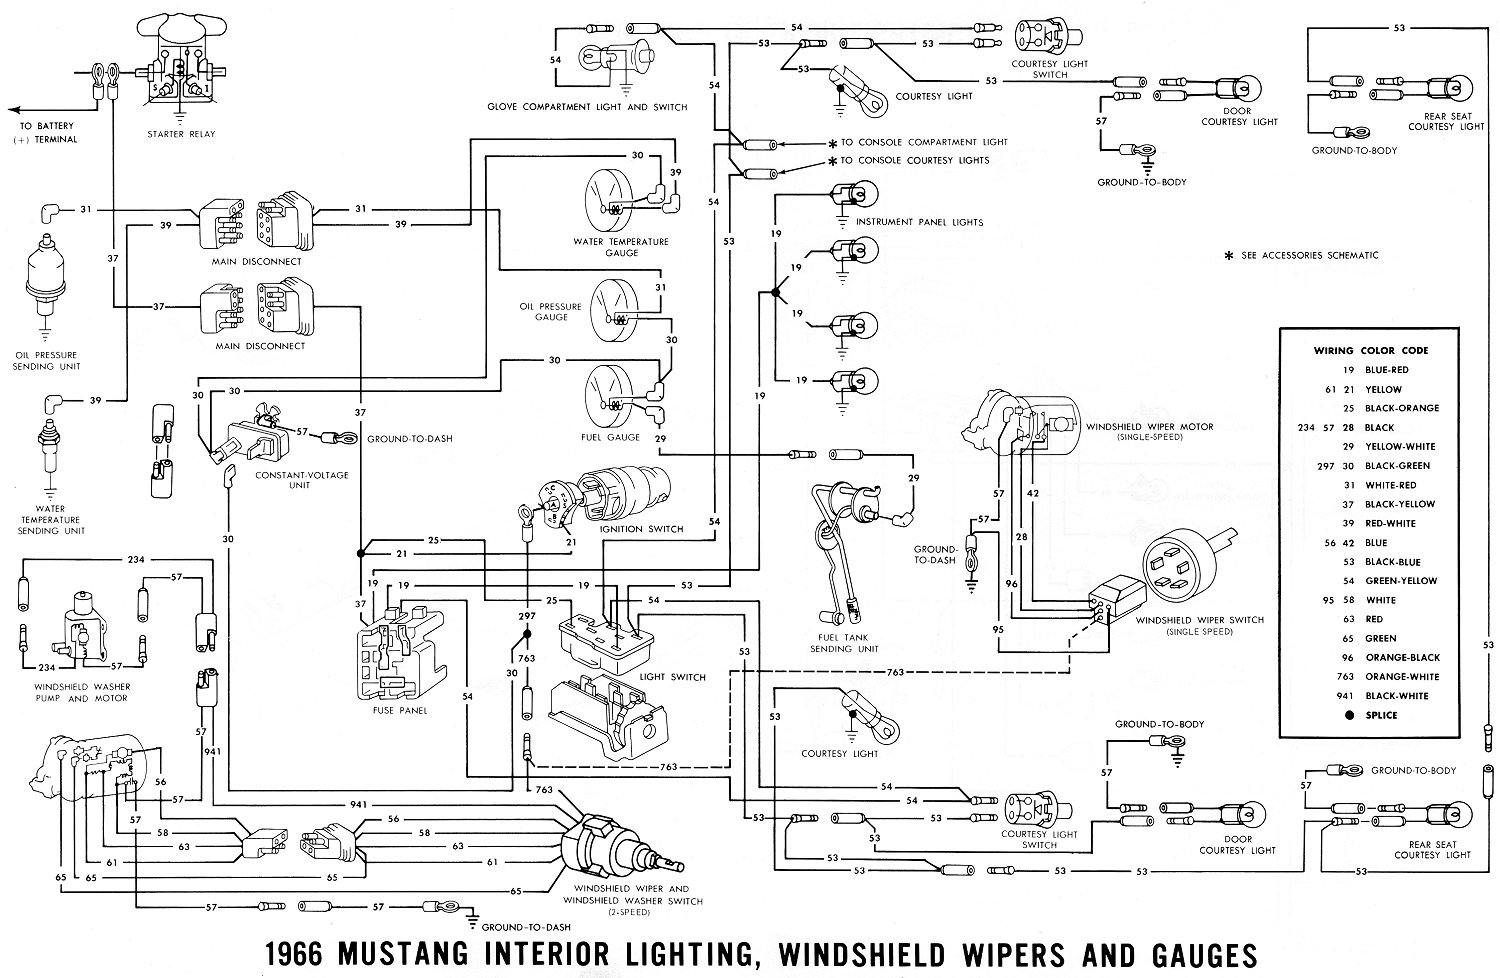 wiring diagram for rheem air conditioner with 1966 Mustang Wiring Diagrams on Home Heating Systems in addition Wiring Thermostat Honeywell 8320u Furnace Heat Pump Trane Xe78 Xe1000  bo 165535 besides Wiring Diagrams For Nest Thermostat together with Schematic Diagrams Hvac Systems likewise Heat Pump Thermostat.